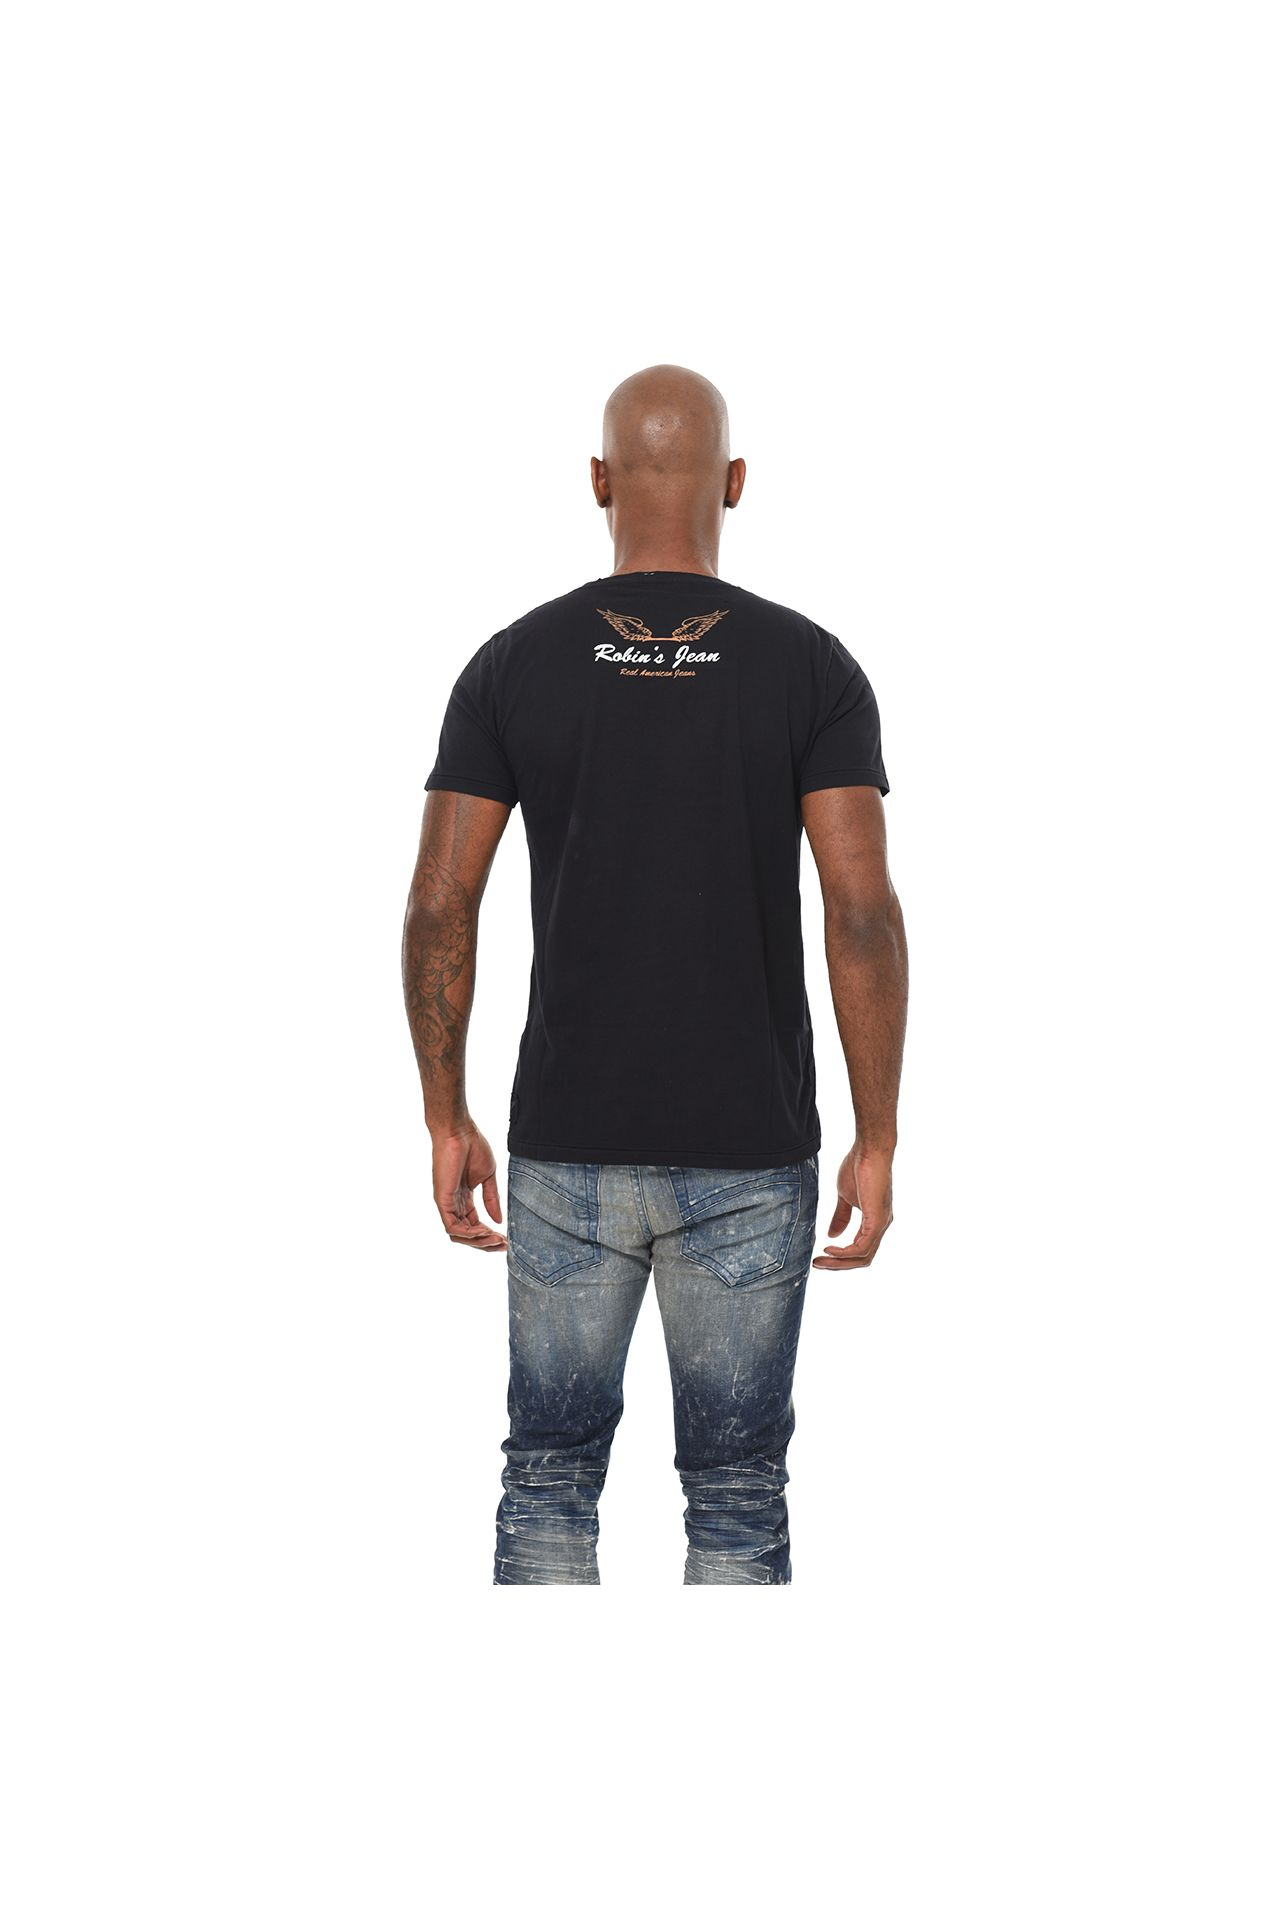 FEATHER ART TEE IN BLACK